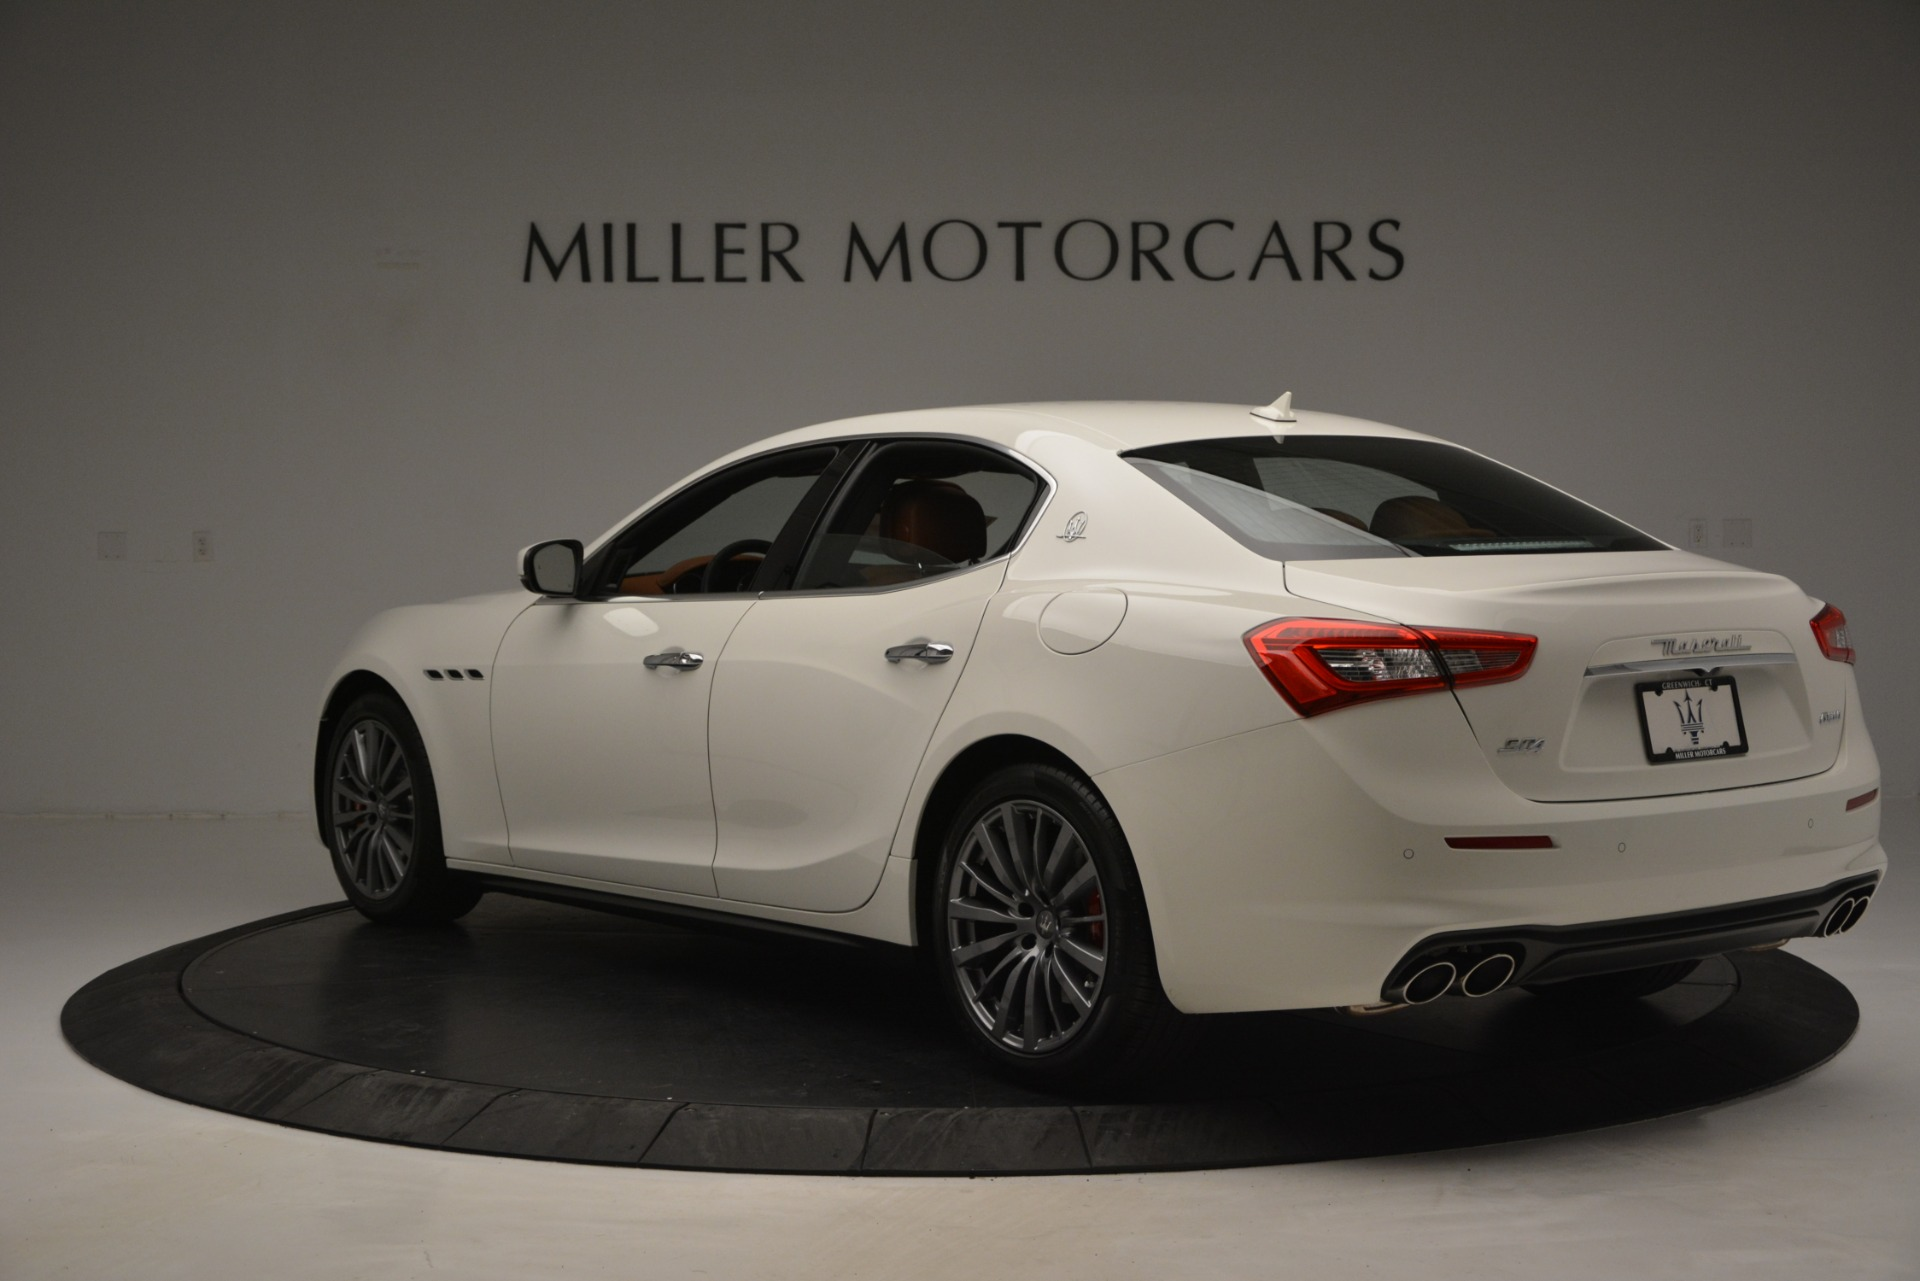 New 2019 Maserati Ghibli S Q4 For Sale In Greenwich, CT. Alfa Romeo of Greenwich, M2245 2795_p6